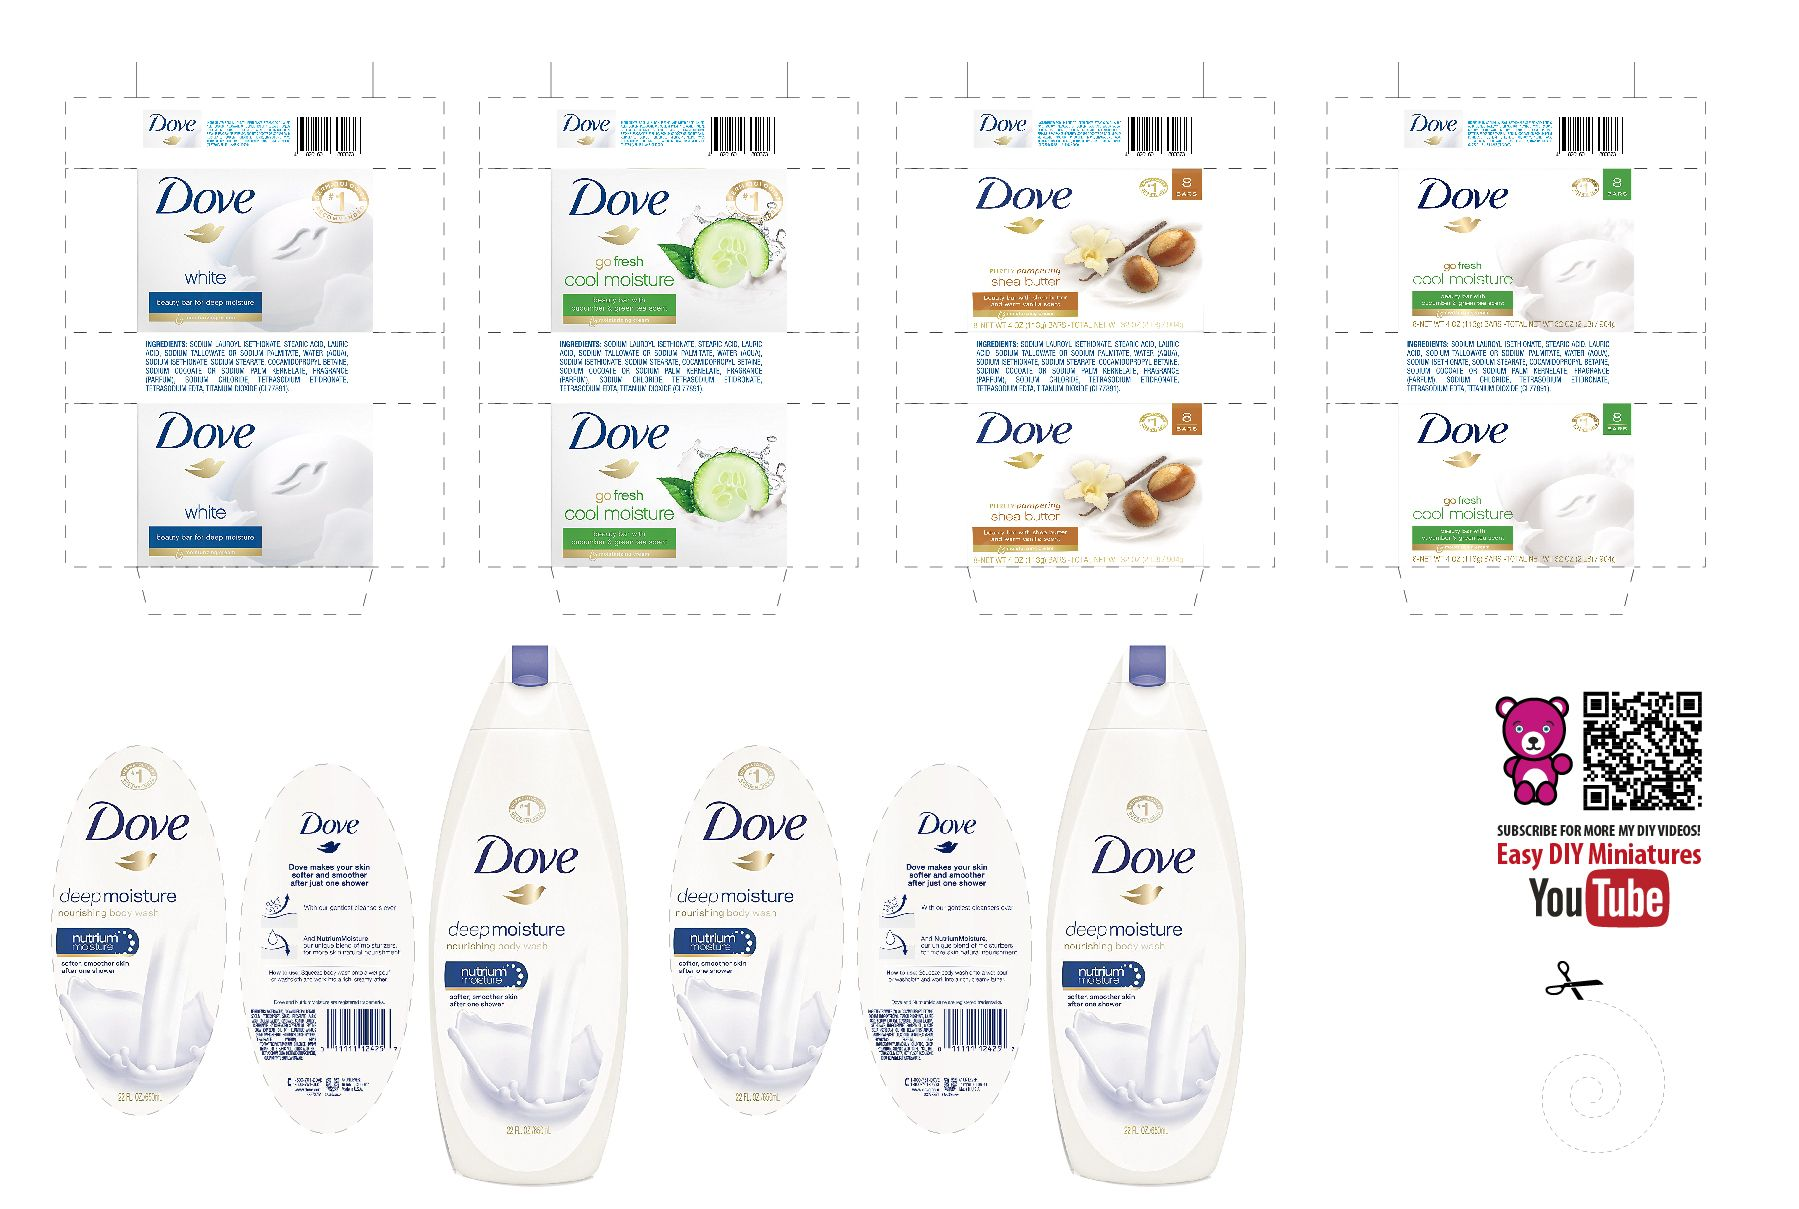 Dove soap printables | Miniture things, Miniature diy ...